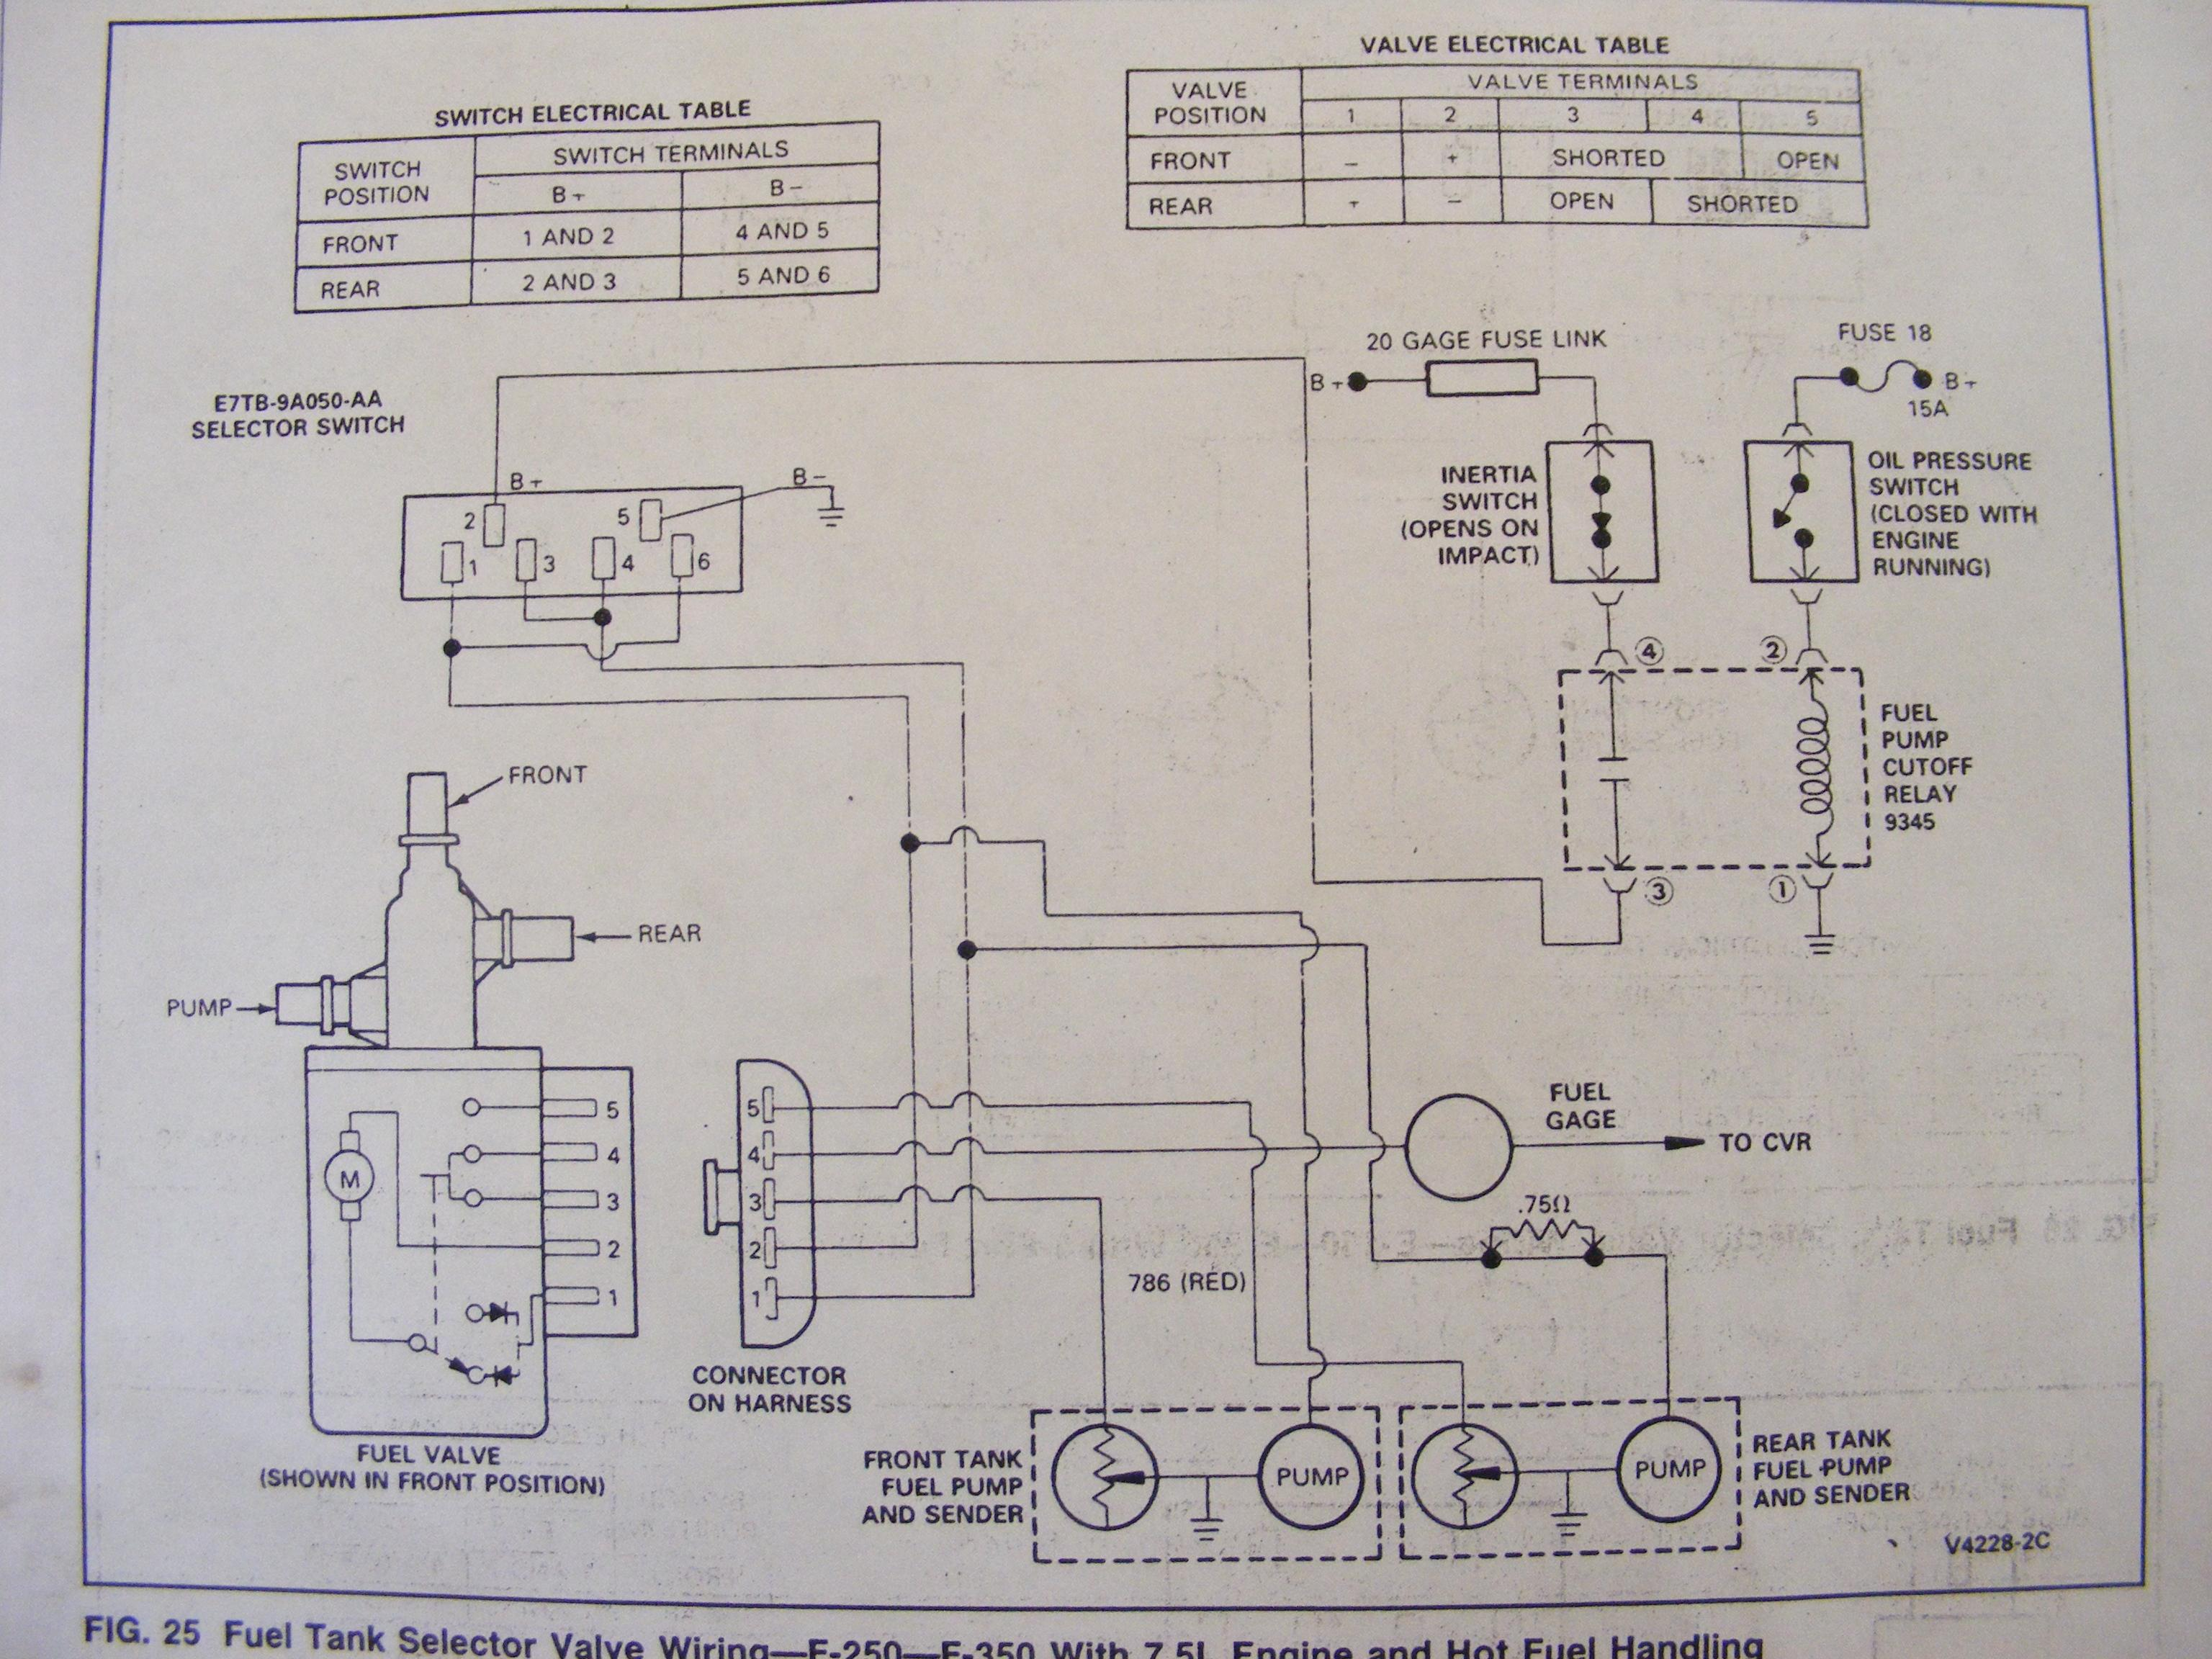 coachman motorhome wiring diagrams  coachman  free engine